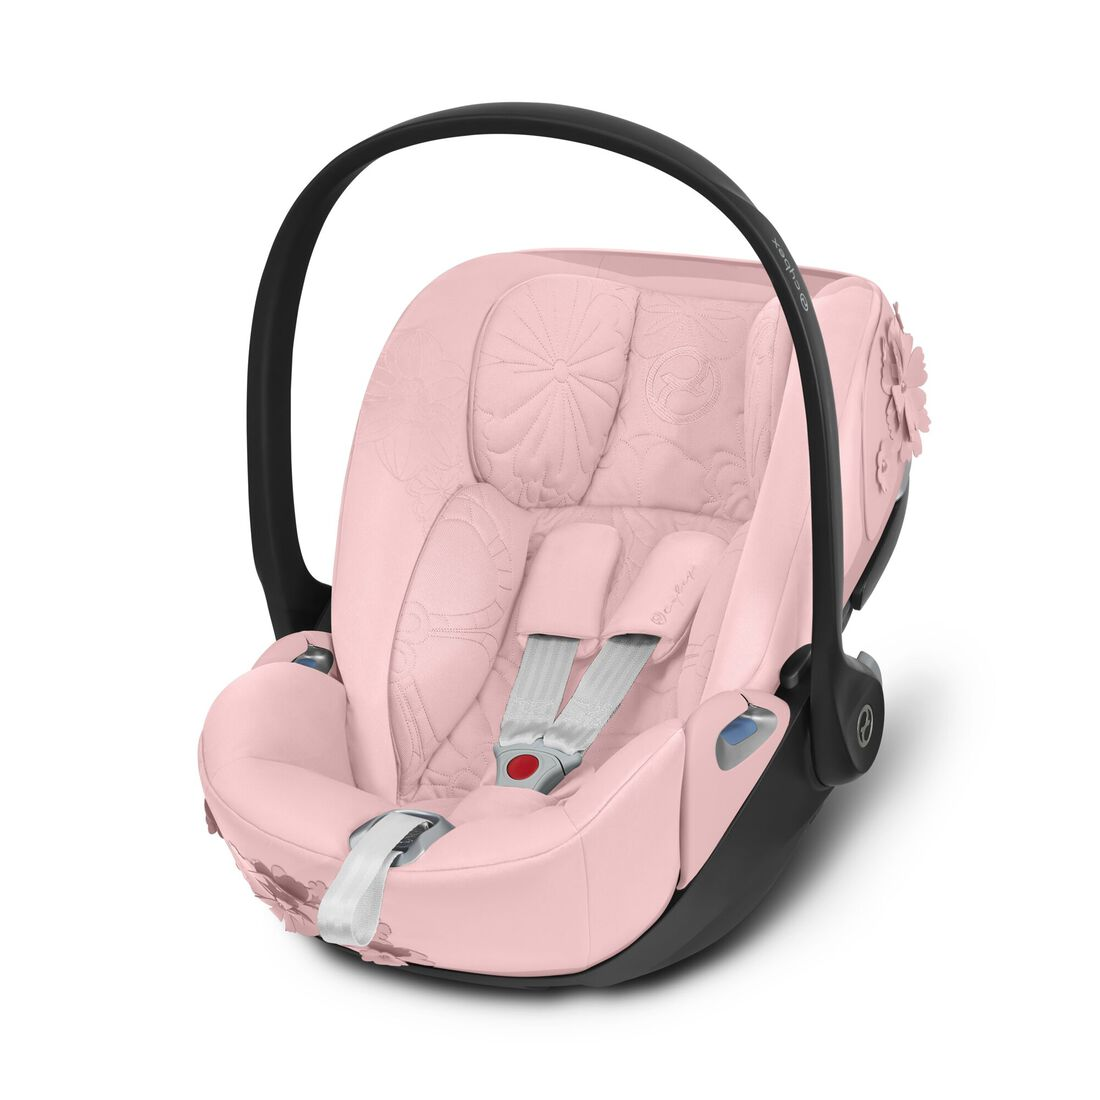 CYBEX Cloud Z i-Size - Pale Blush in Pale Blush large image number 2